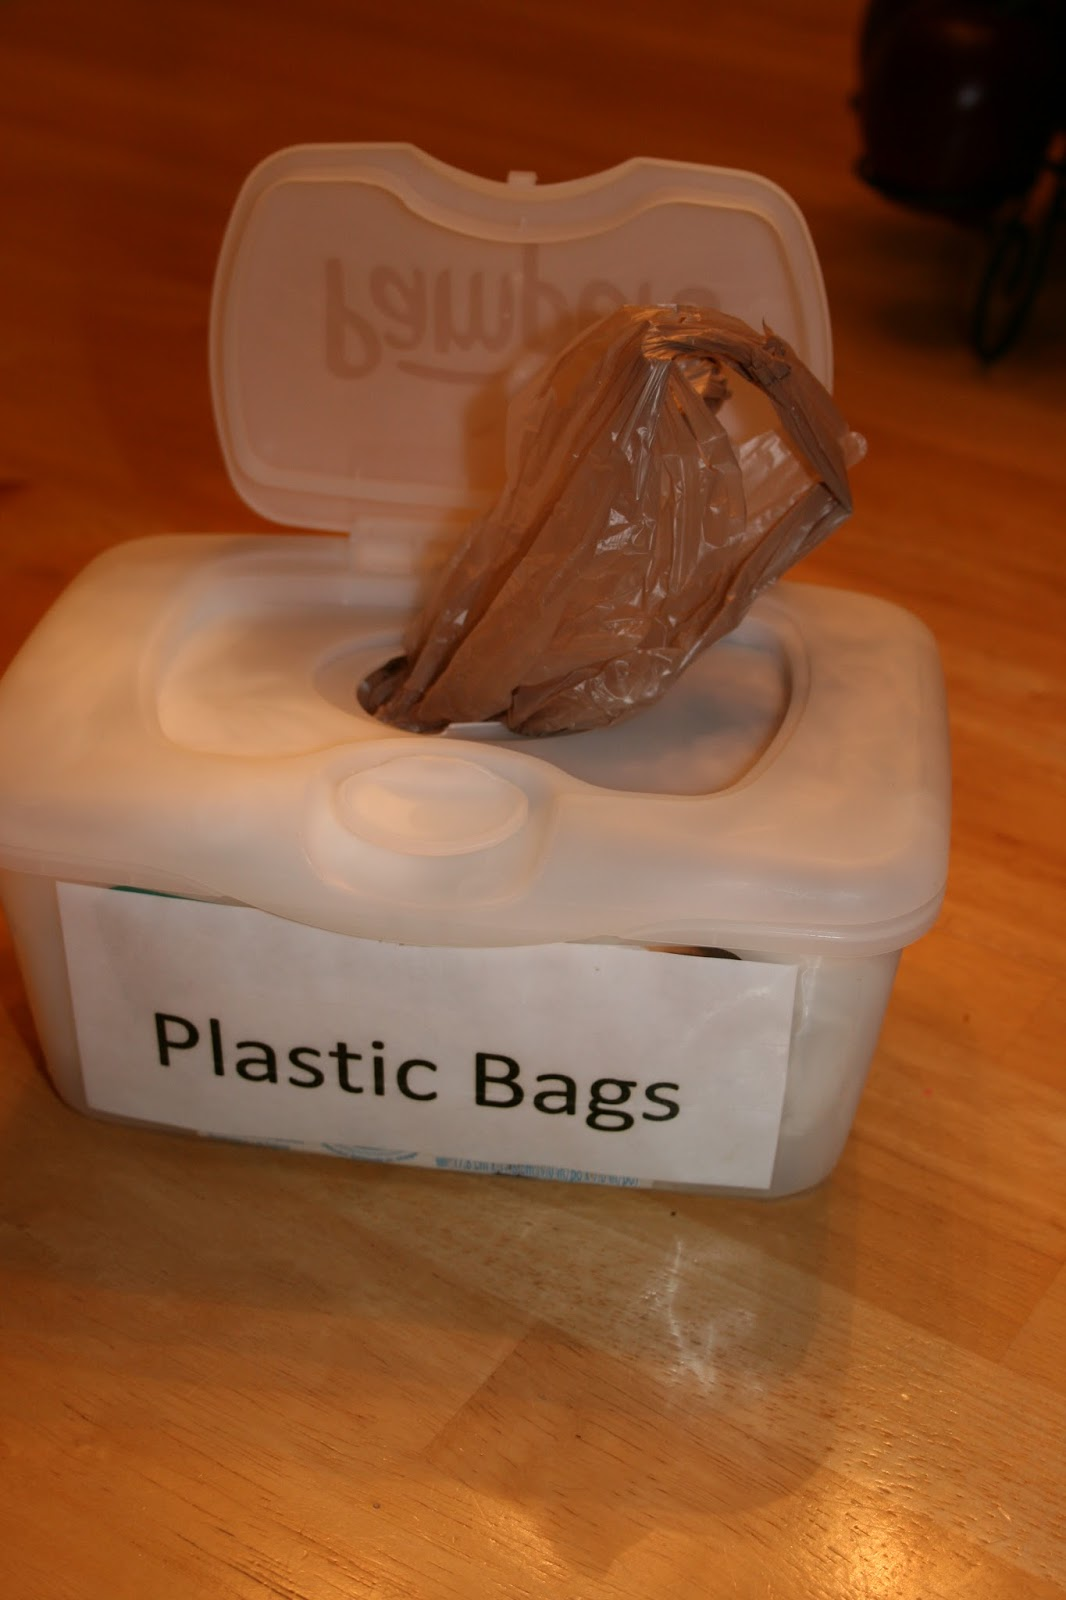 How to Reuse Baby Wipe Containers to Store Plastic Bags - The Teacheru0027s Wife & How to Reuse Baby Wipe Containers to Store Plastic Bags - The ...